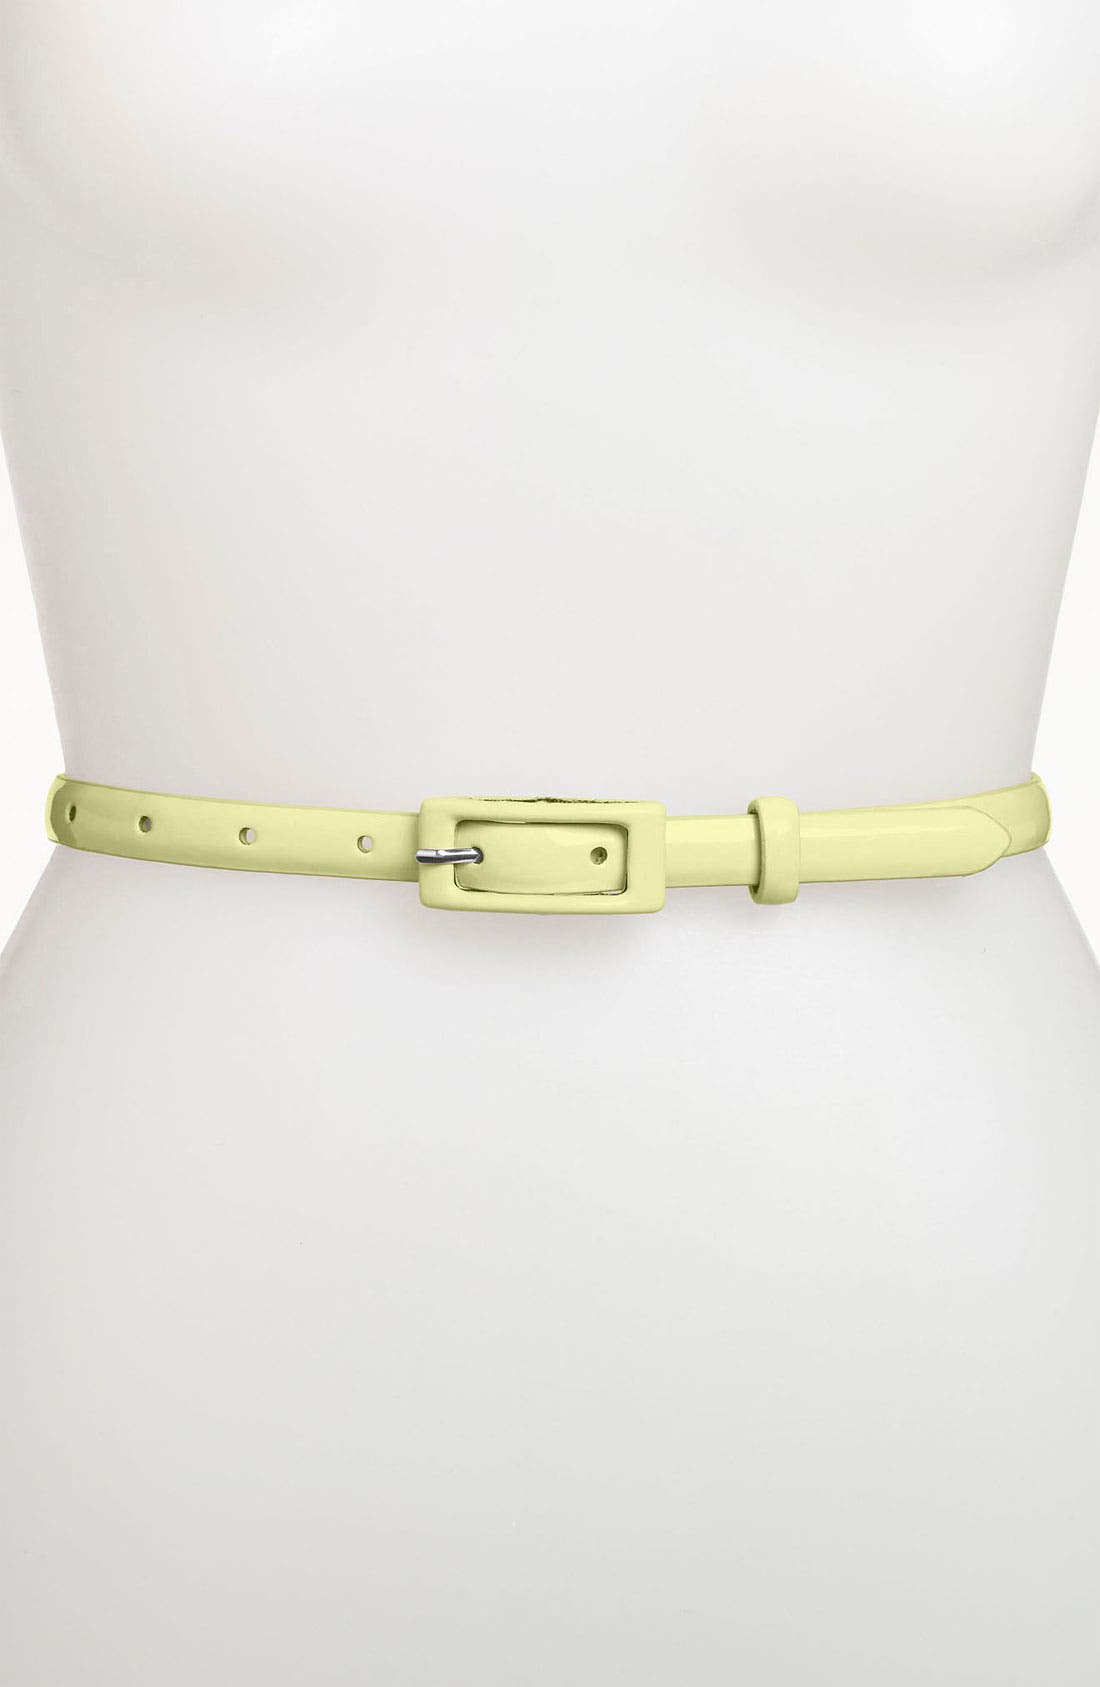 Alternate Image 1 Selected - Another Line 'Updated' Skinny Patent Belt